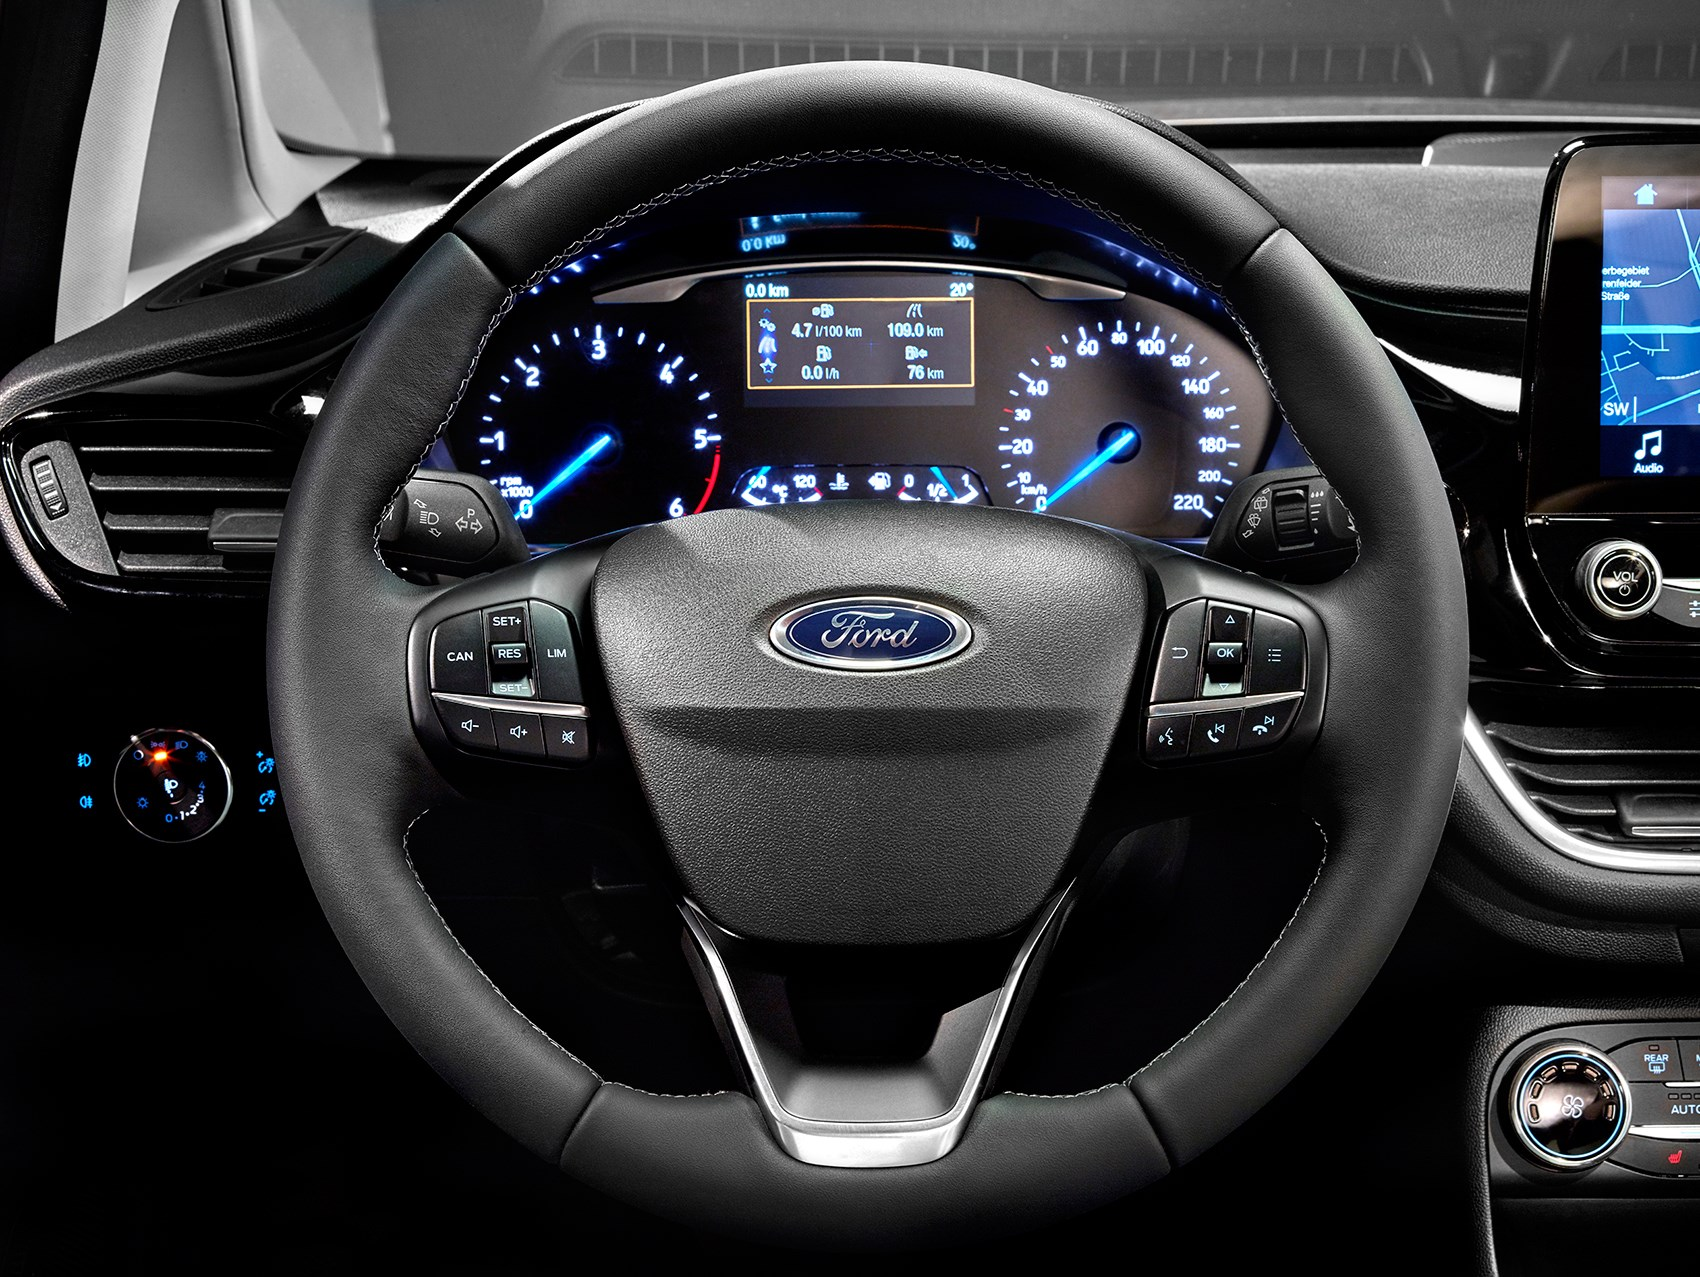 New Ford Fiesta Steering Wheel And Instruments